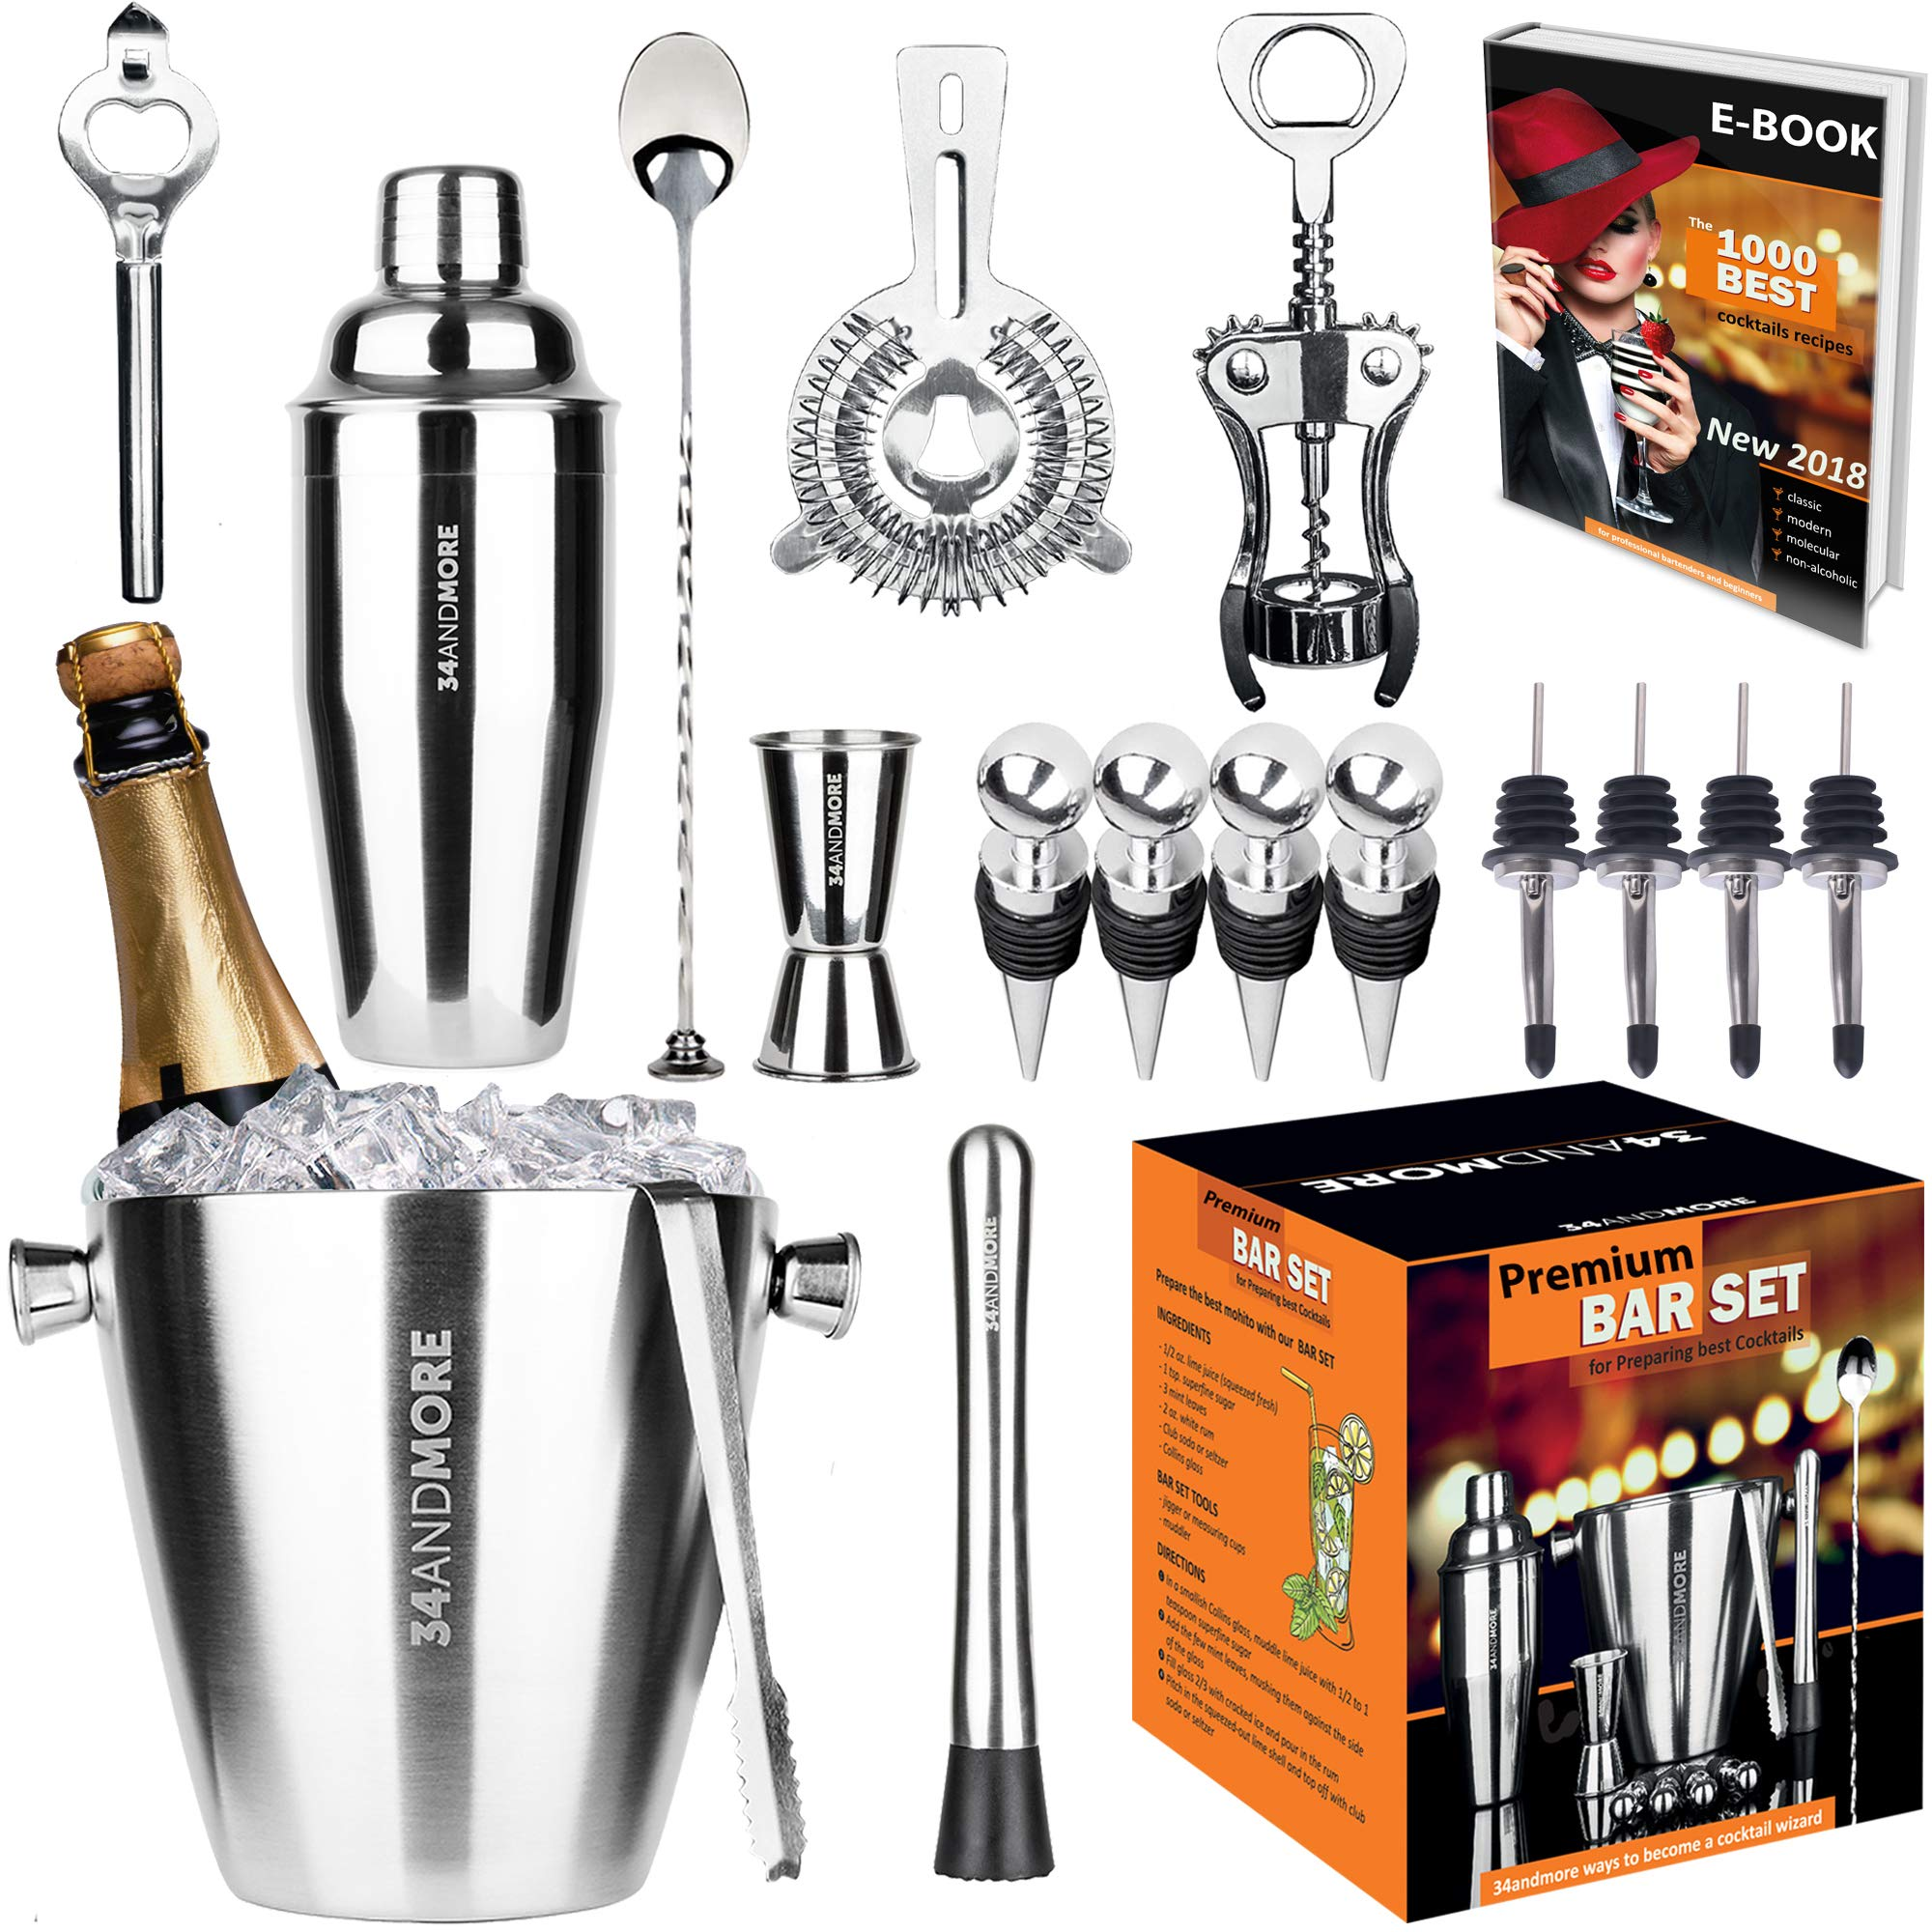 Bar Set 17-Pieces Jumbo Bartender Kit - Premium Cocktail Set Mixology Kit for Bar and Home -All-In-One Cocktail Shaker Set - Bartender Mixology Barware Set for Men and Women - Bar Tools Martini Kit